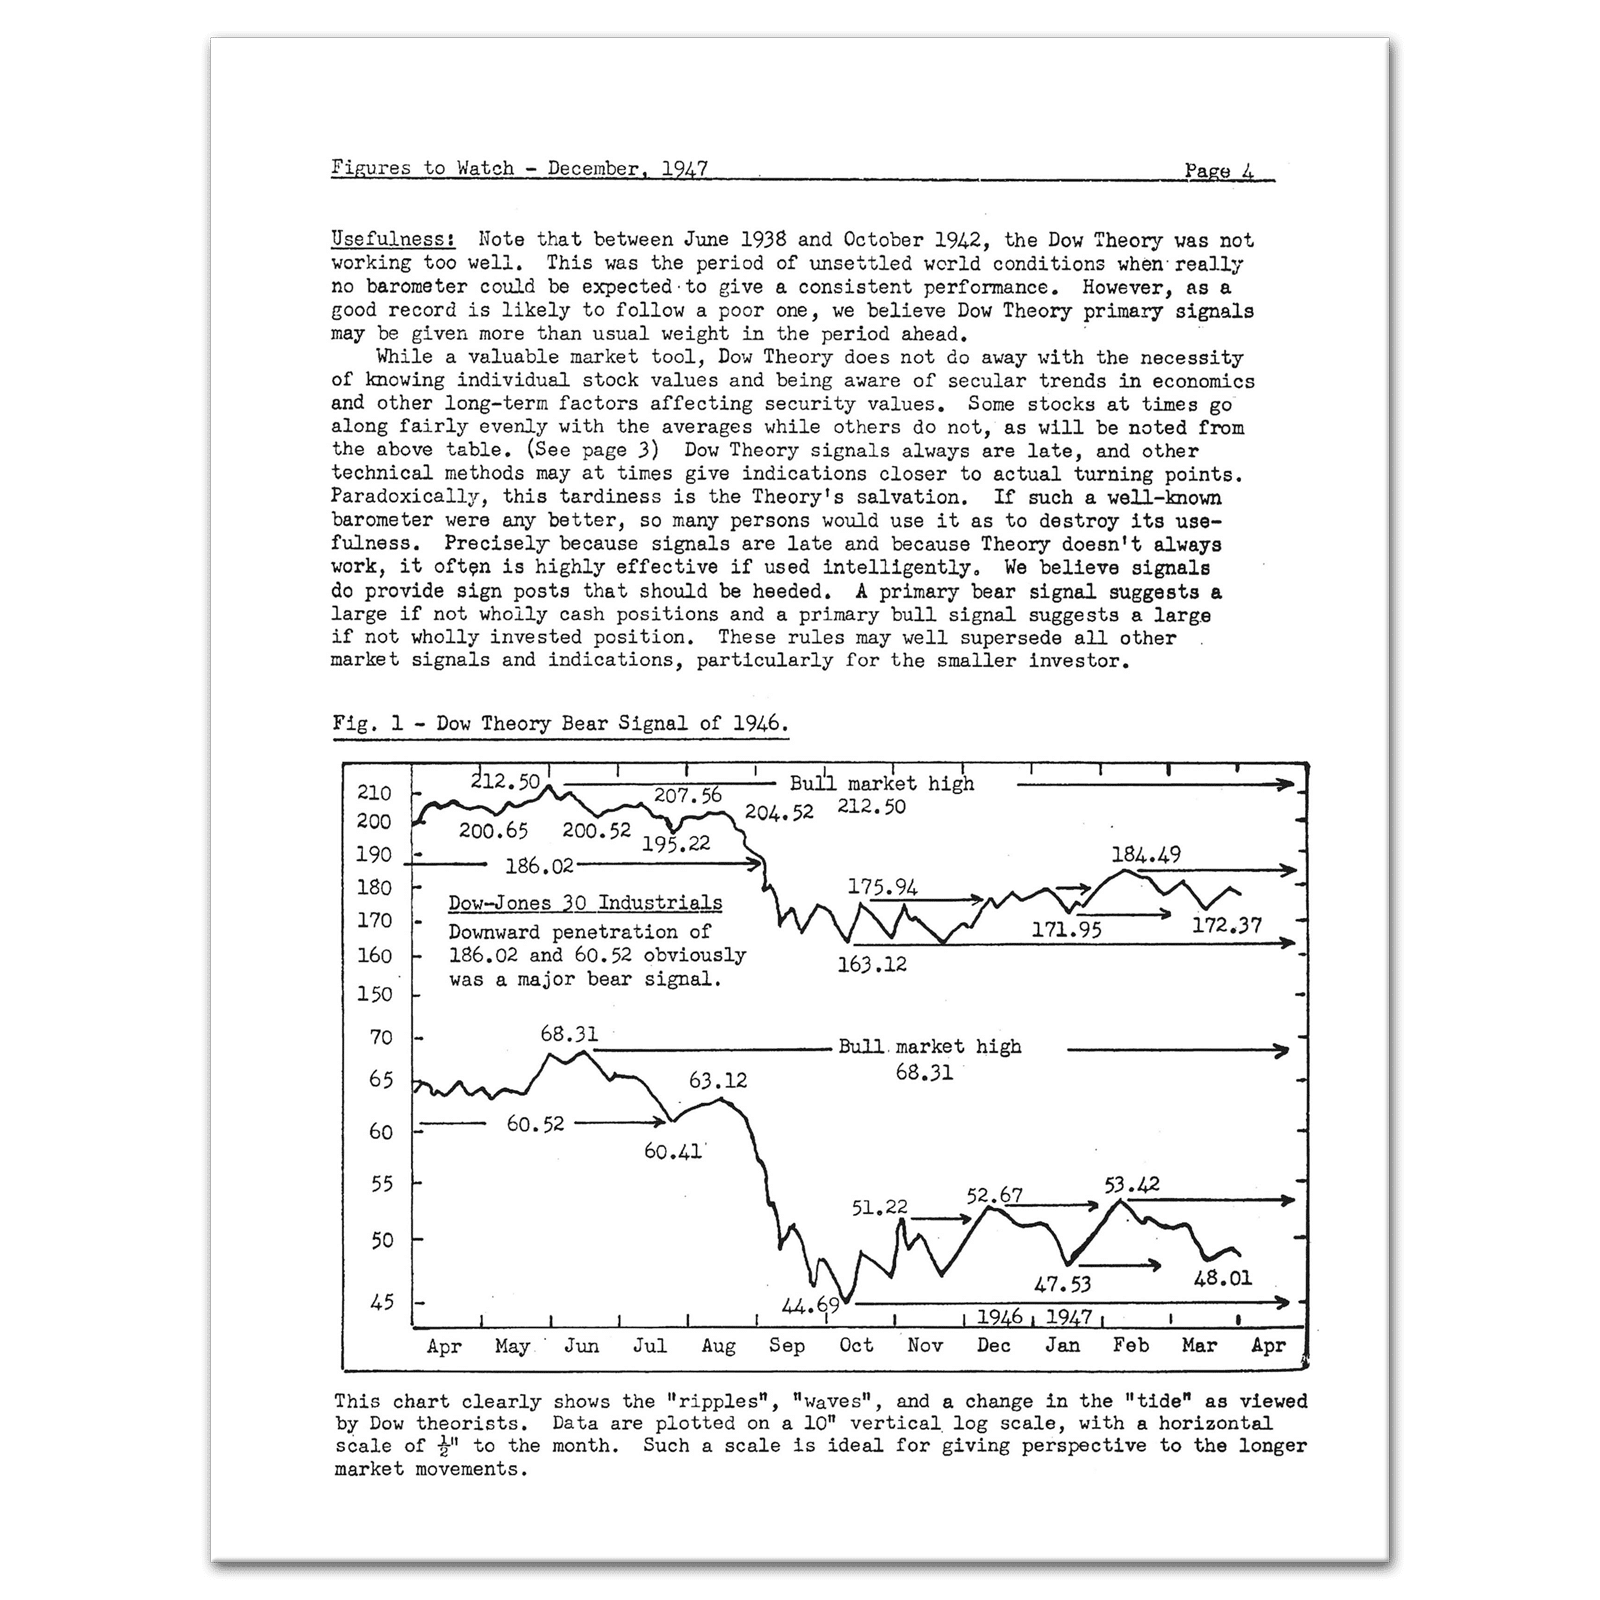 Figures to Watch: In Gauging Market Turning Points (1947) by Paul Hatmaker